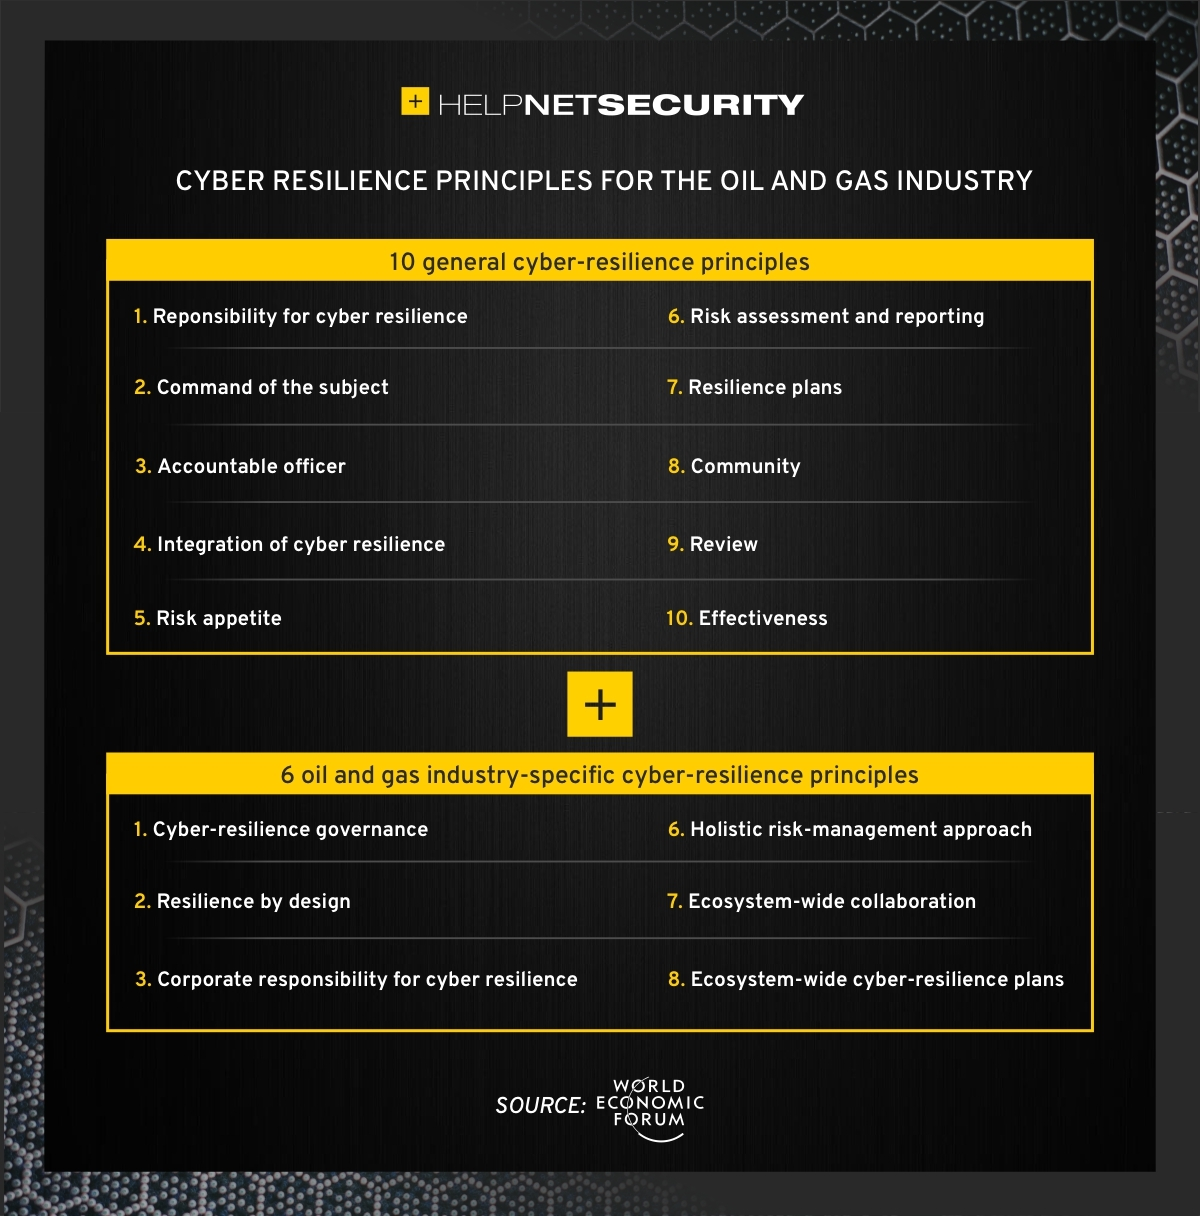 cyber resilience oil gas